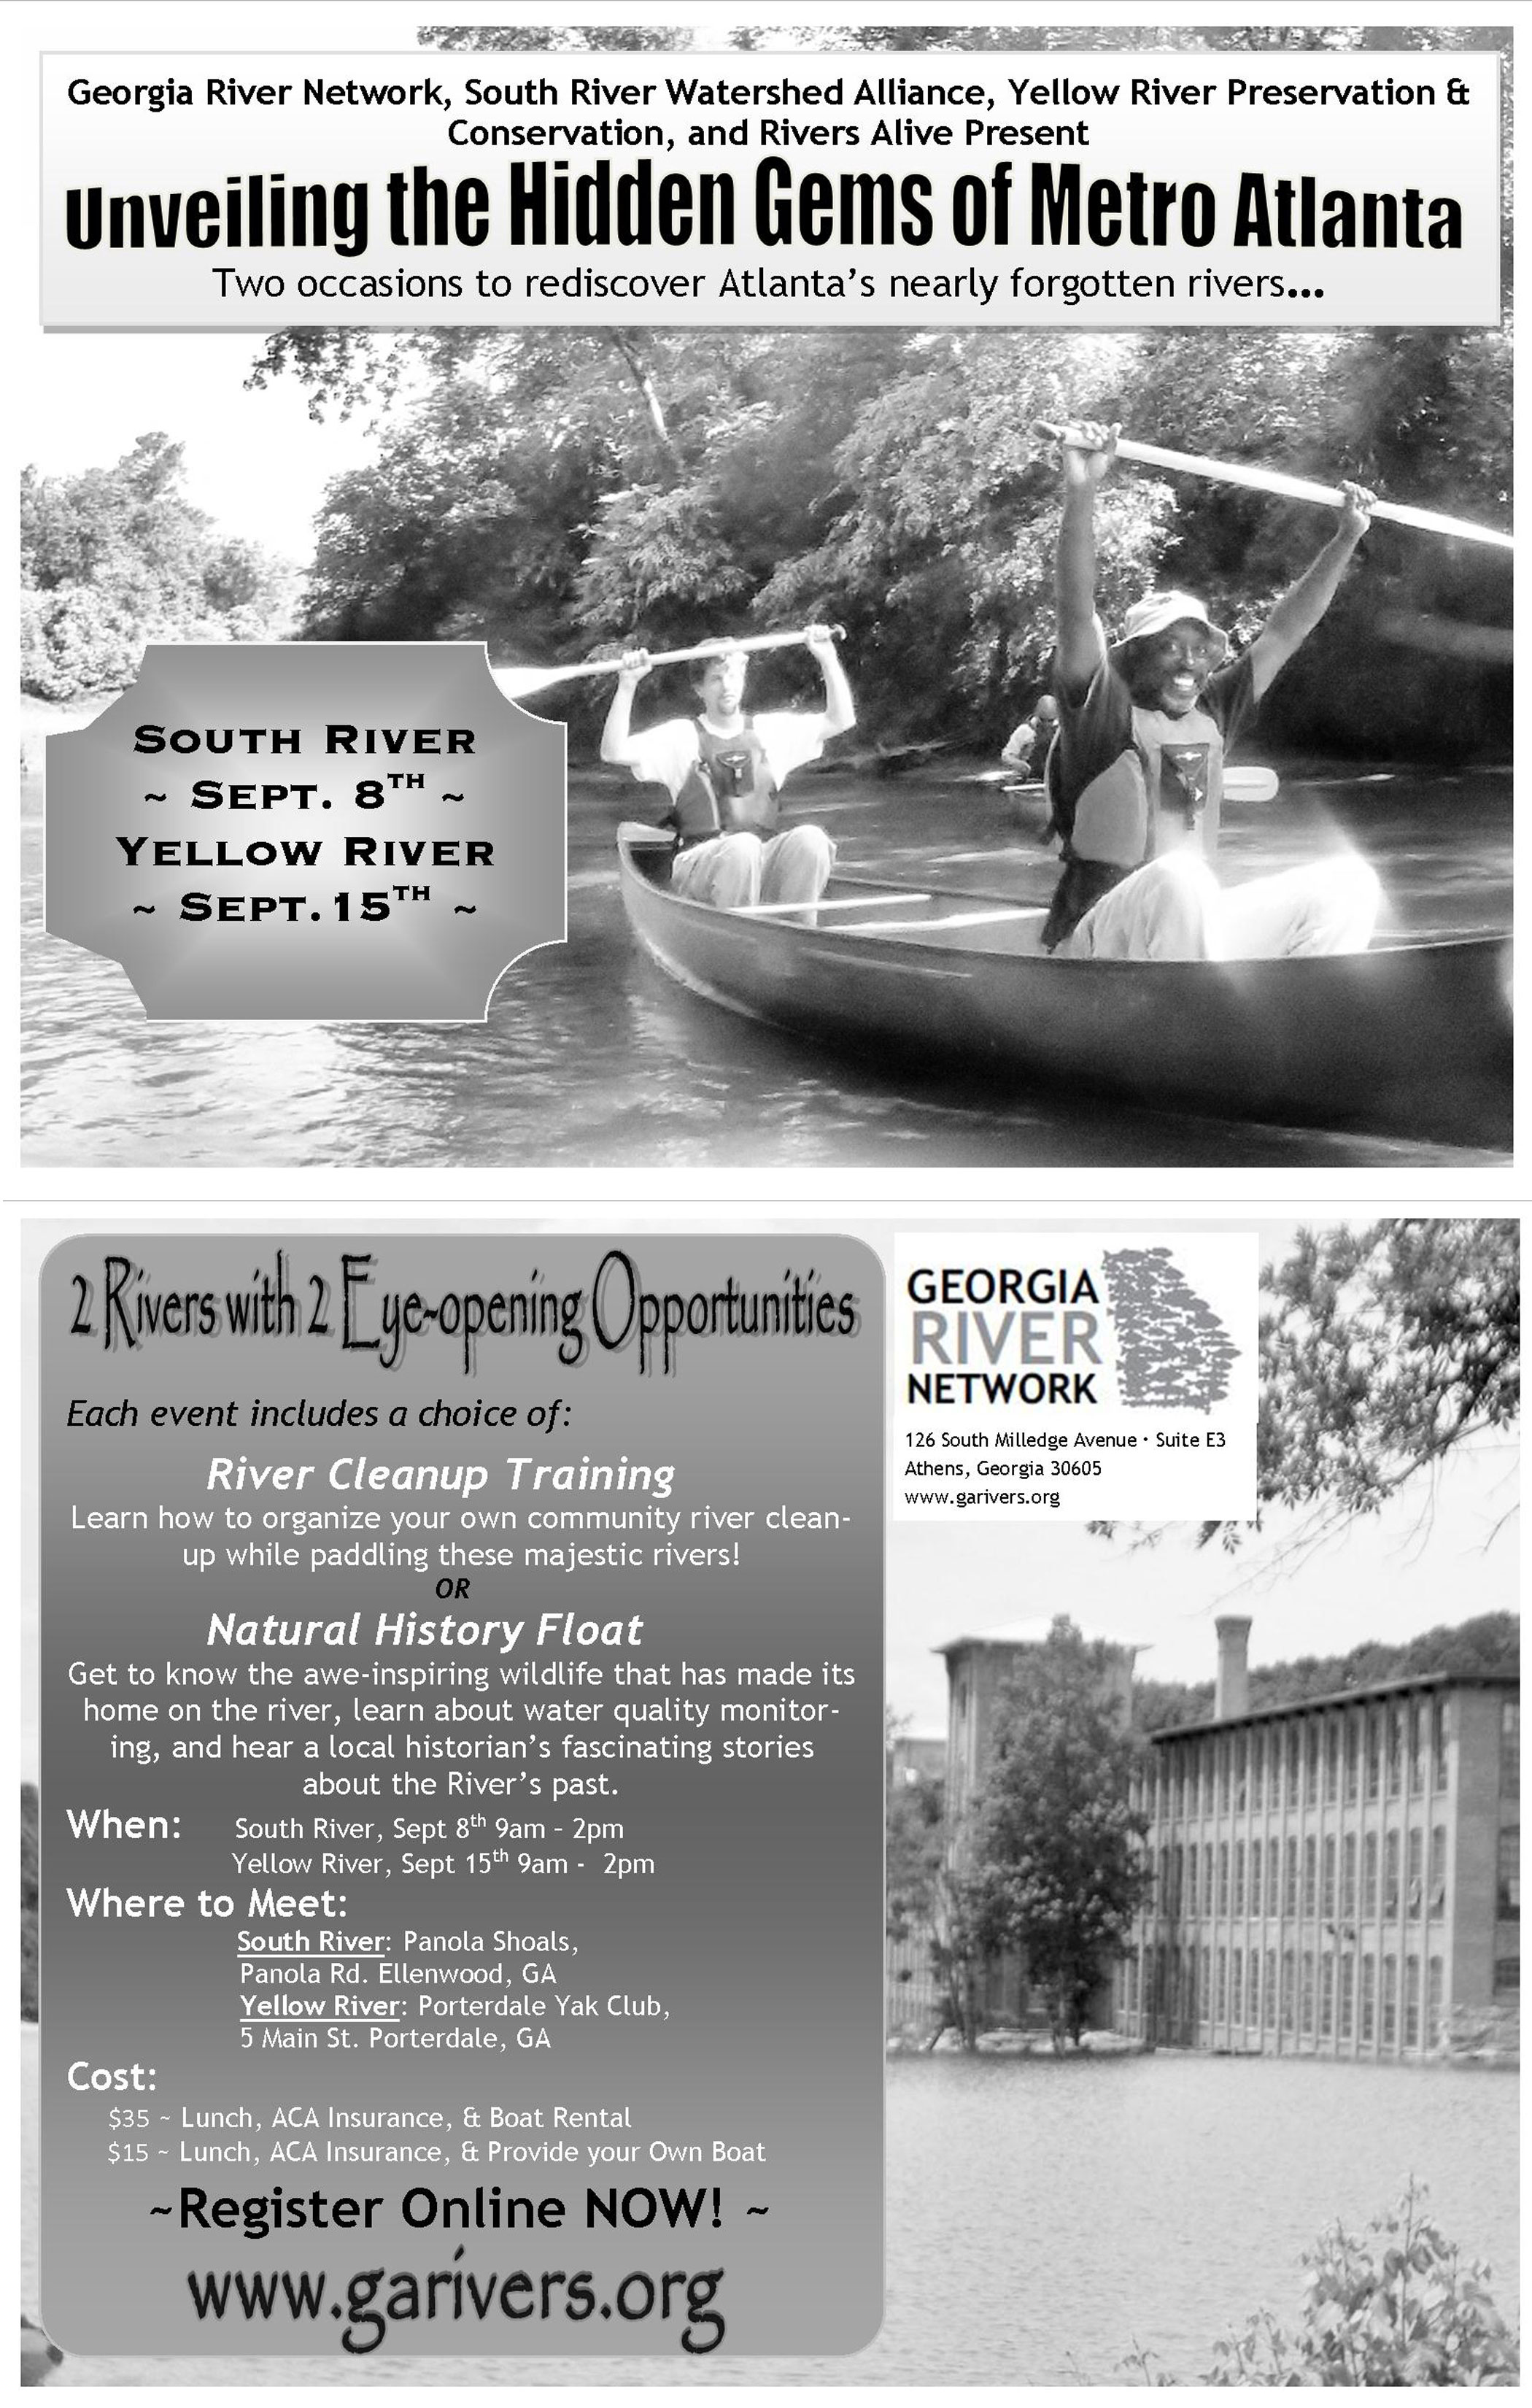 Georgia River Network, South River Watershed Alliance, the Yellow River Preservation & Conservation, and Rivers Alive invite you to discover Atlanta's South River on September 8 from 9am-2pm.  The event includes your choice of participating in a River Clean-Up Training or Natural History Float while you paddle.  The River CleanUp Training will teach you how to organize your own community river cleanup.  The Natural History Float will let you get to know the awe-inspiring wildlife that has made its home on the river, learn more about water quality monitoring, and hear a local historian's fascinating stories about the River's past.